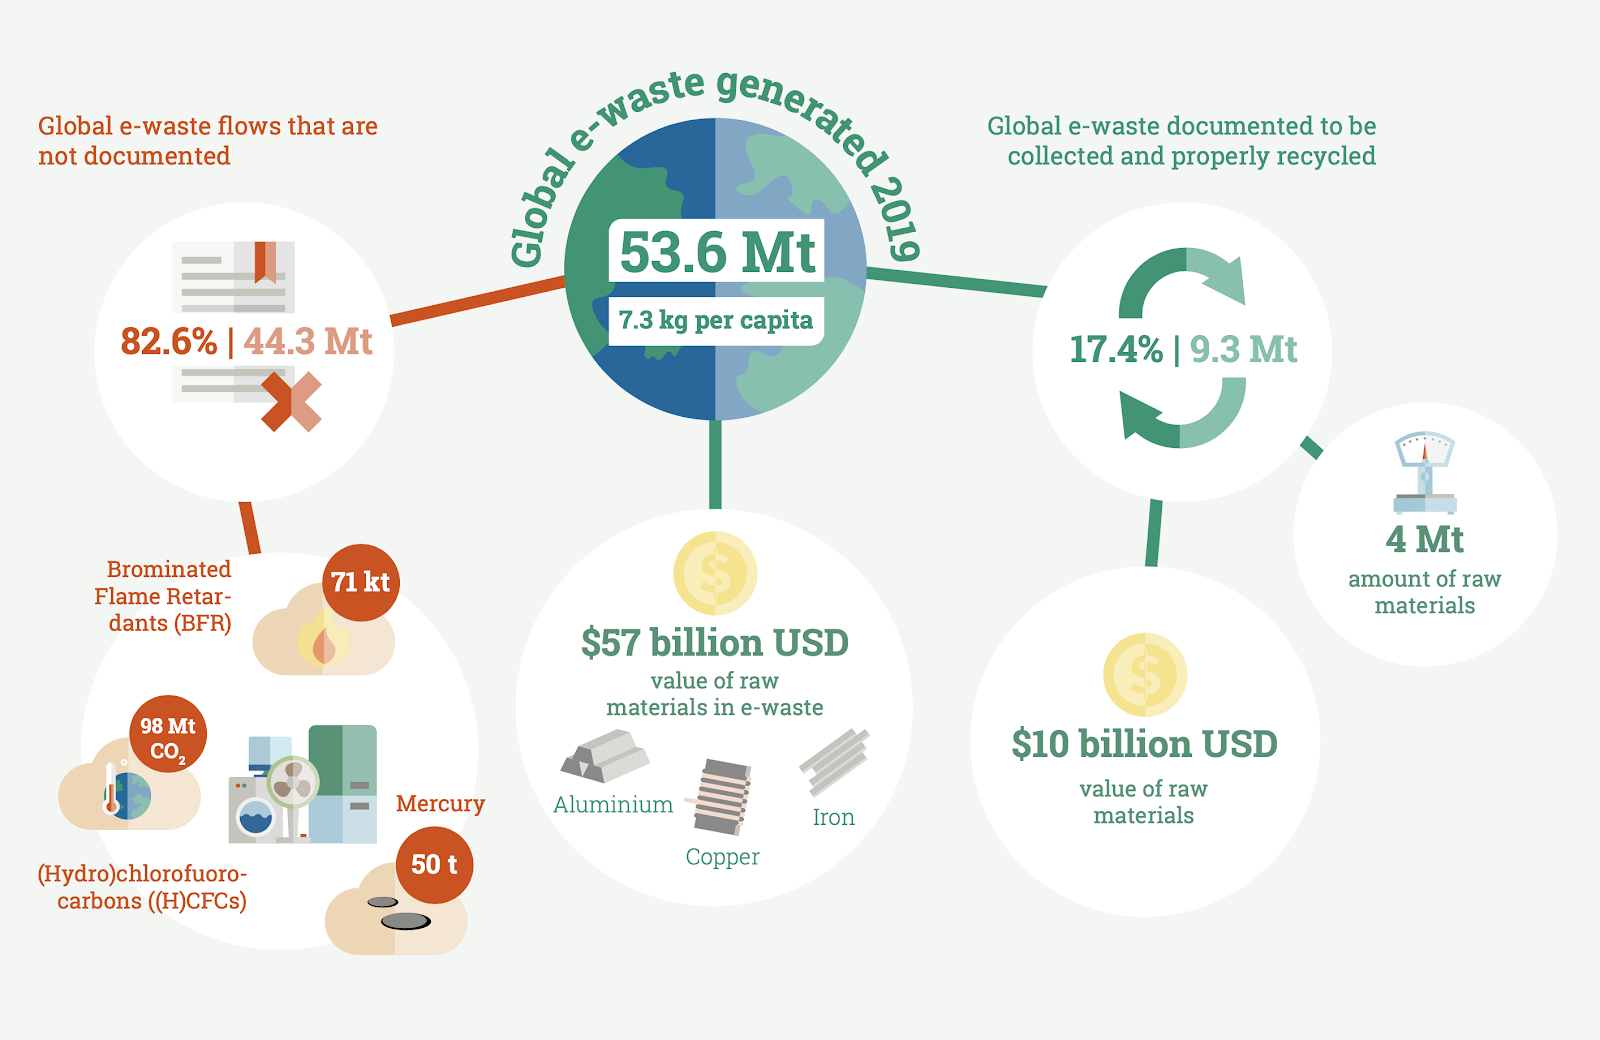 a diagram showing the management of e-waste in 2019 and how much of it was recycled